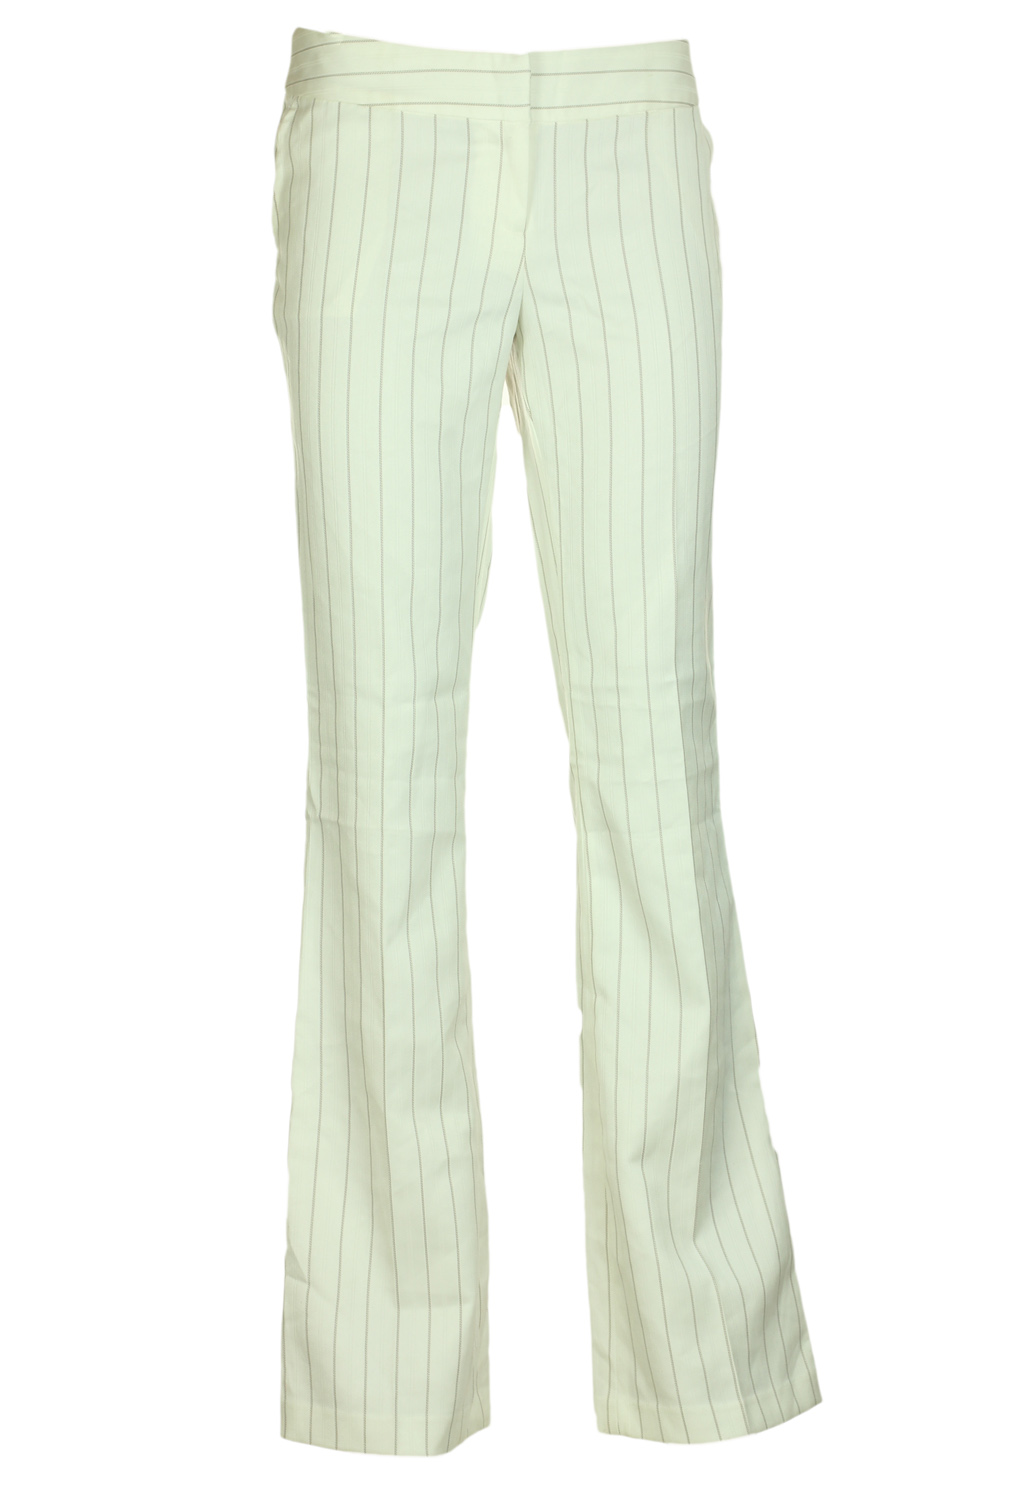 Pantaloni de stofa Tally Weijl Miley Light Beige